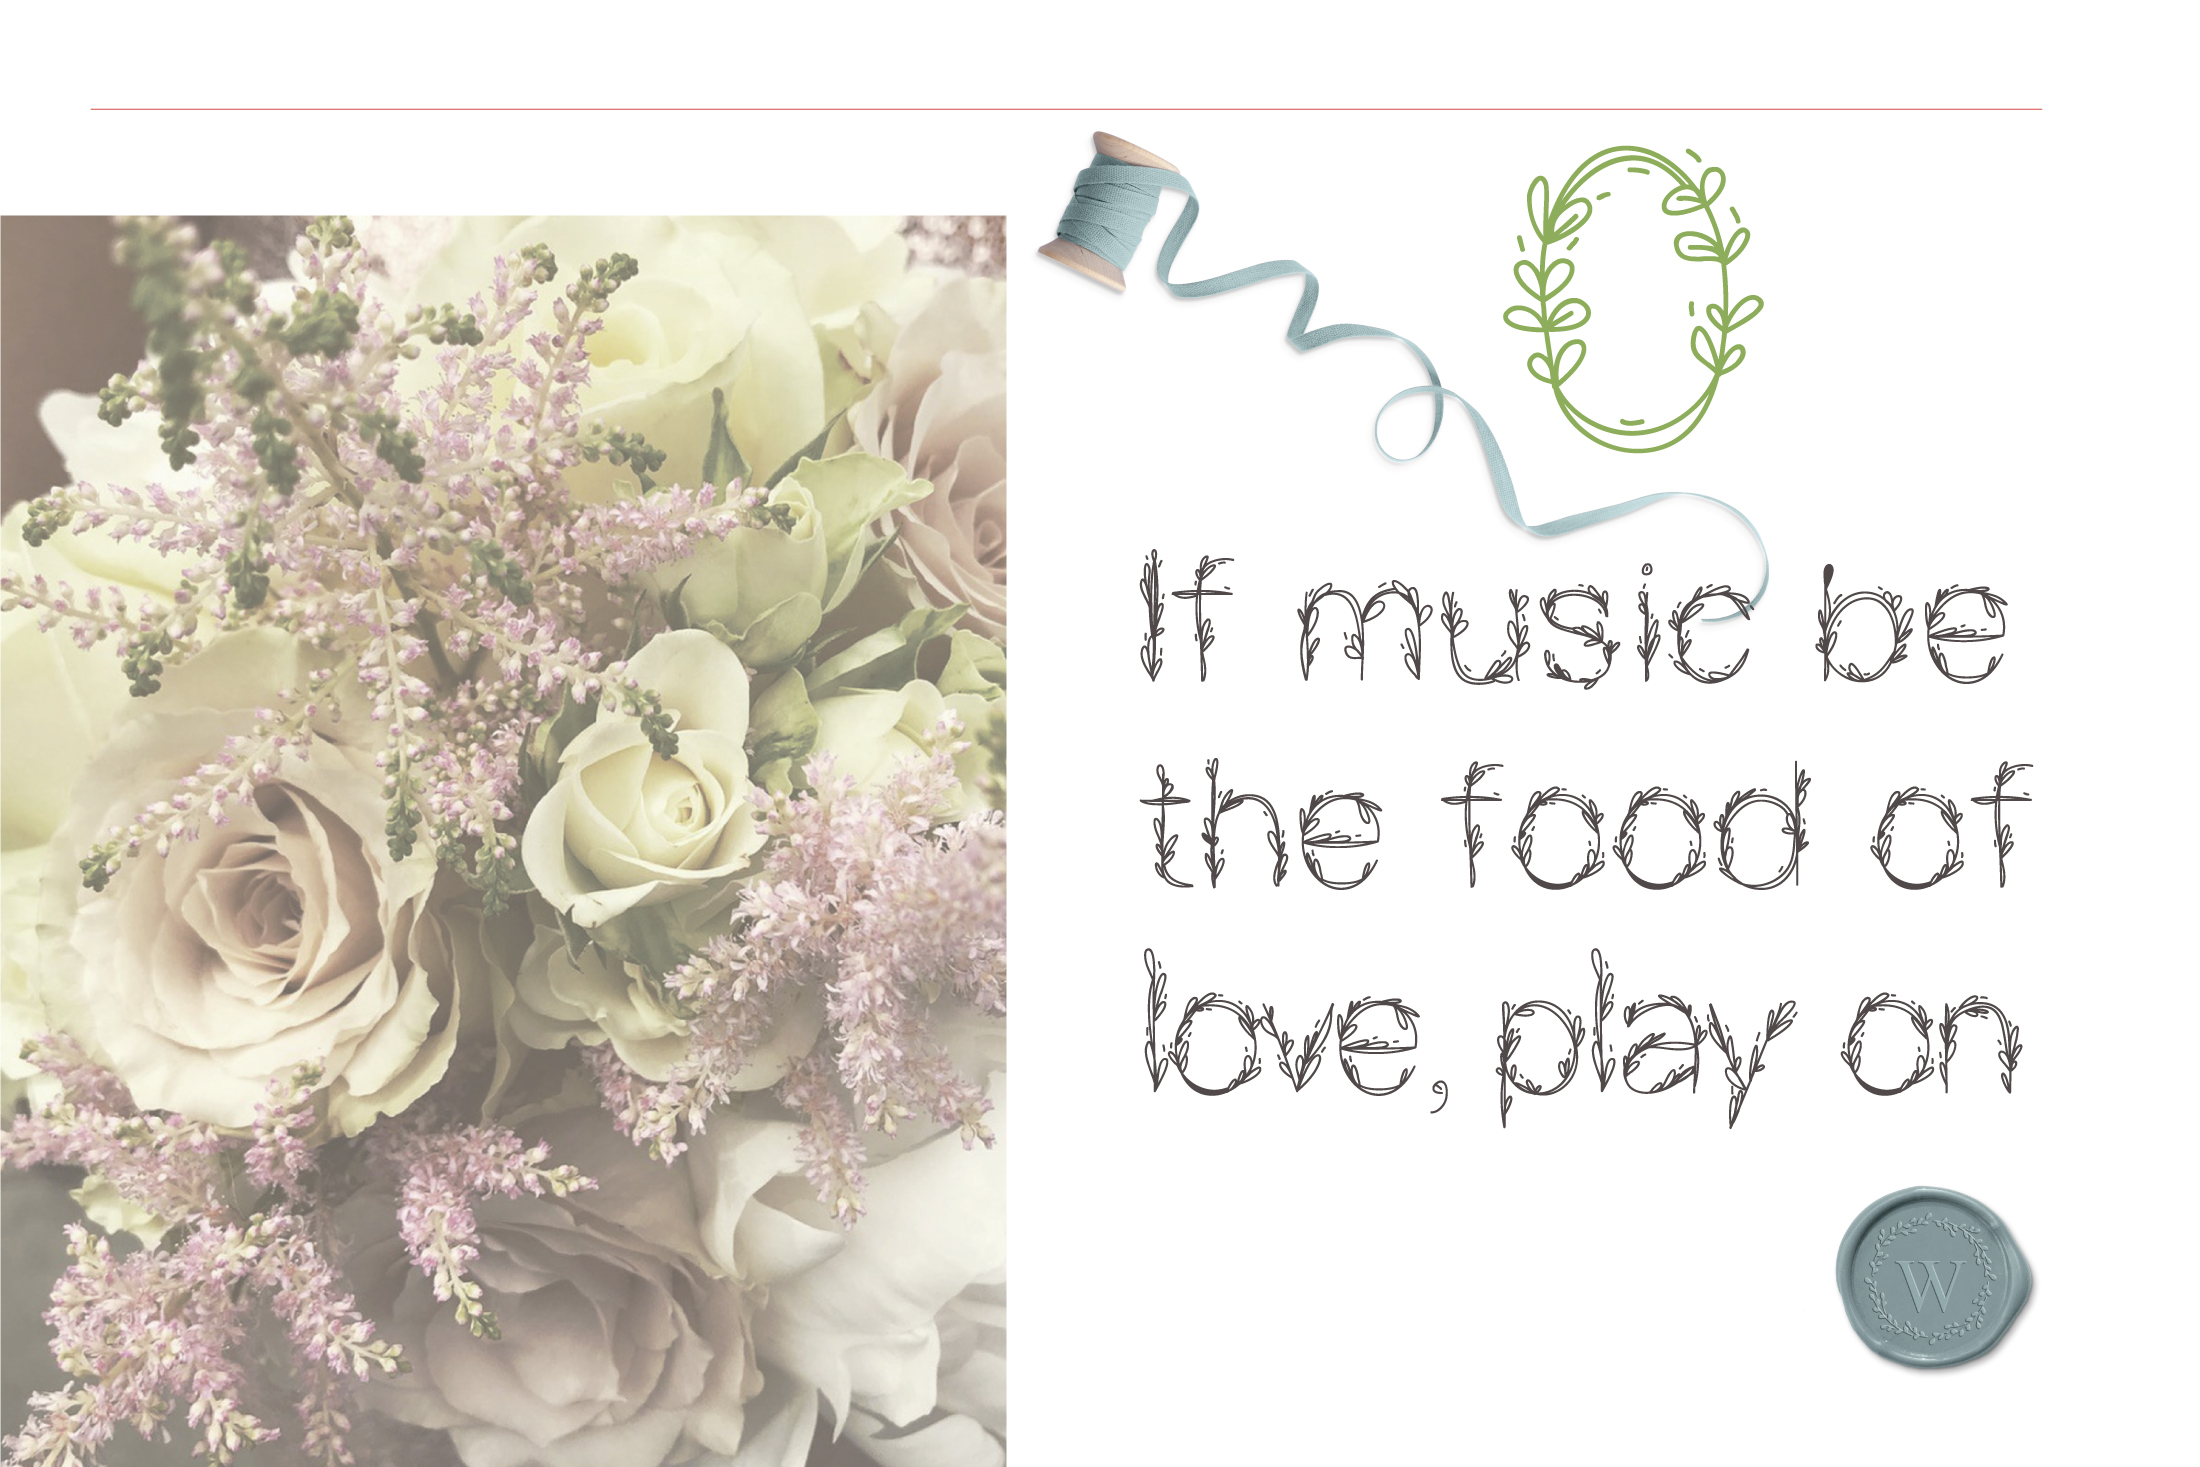 Garden|floral romantic font example image 3